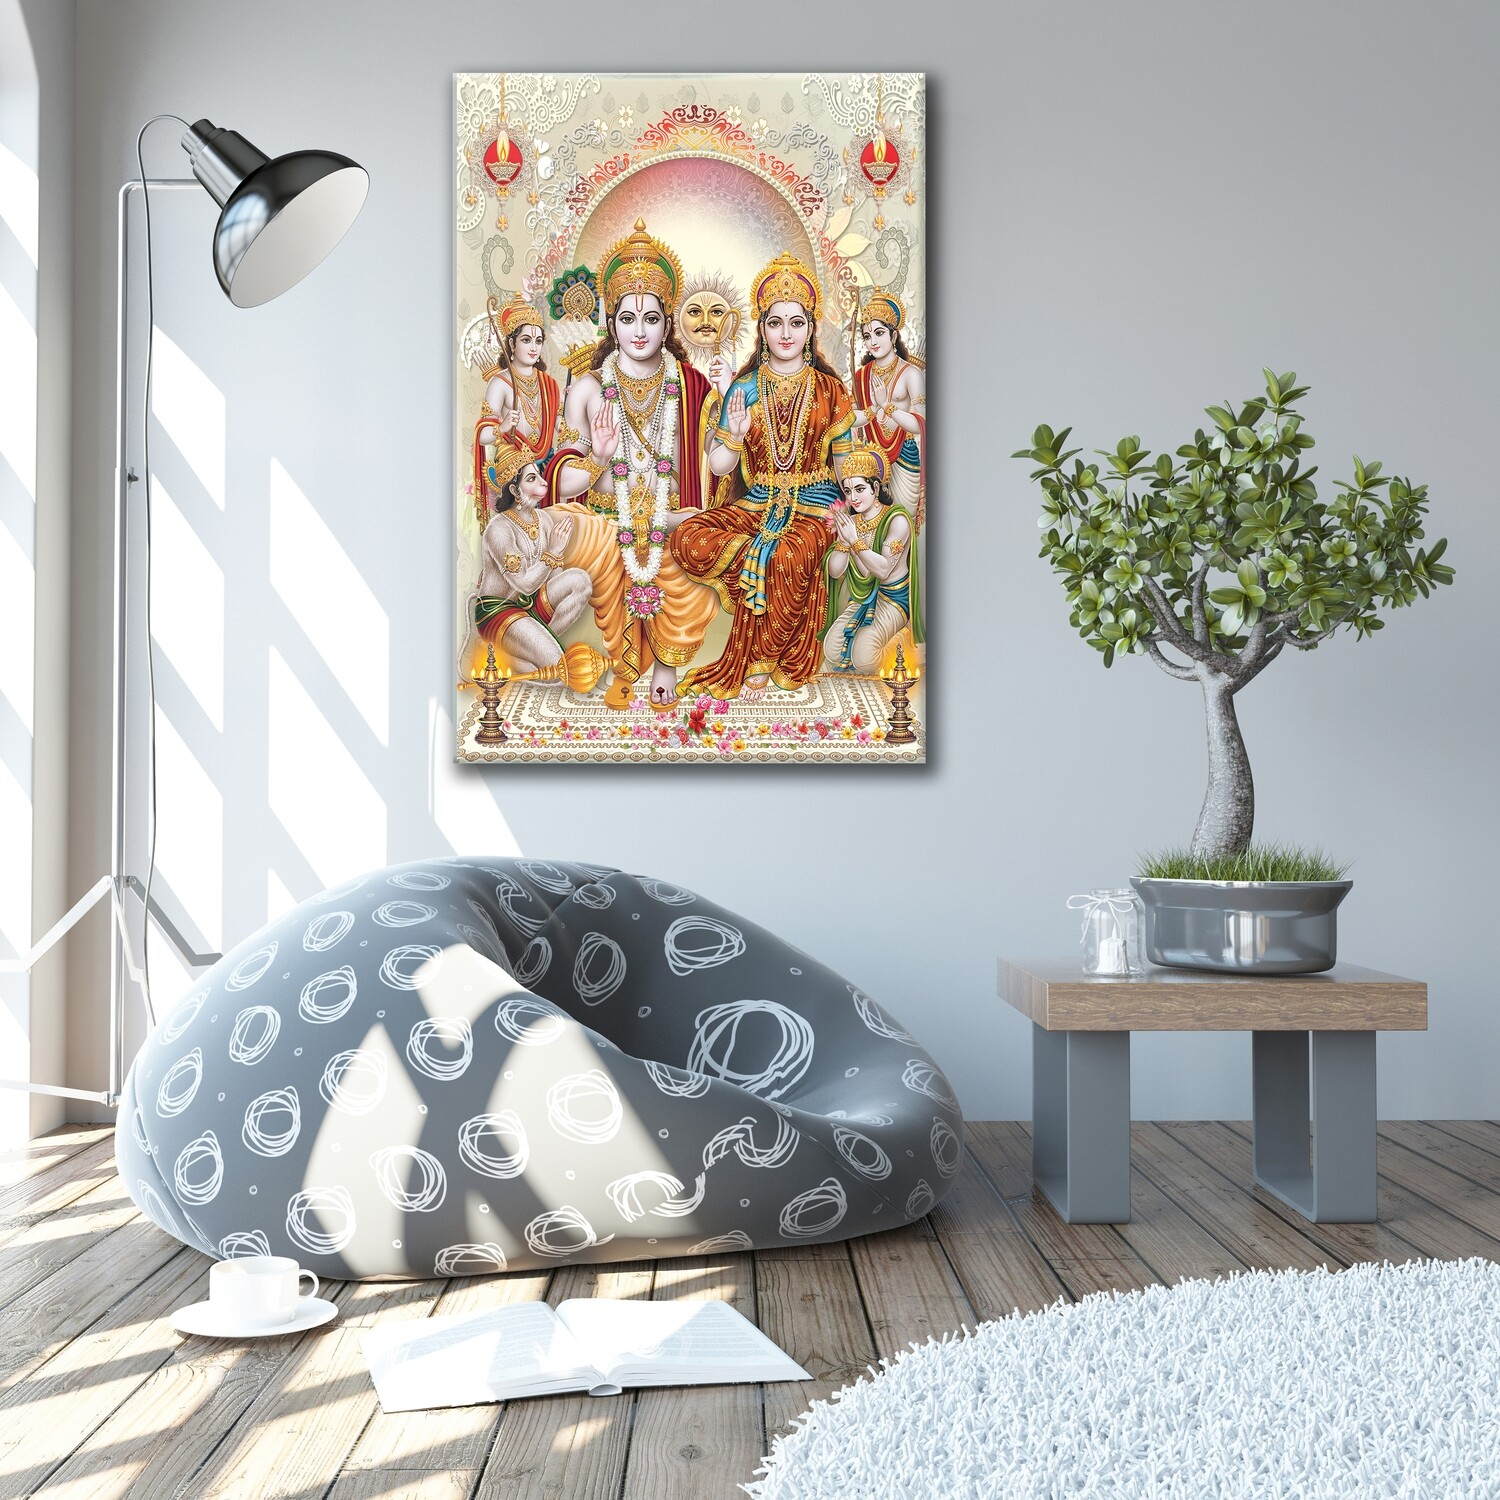 Rama Durbar Painting |Hindu God Balagopala Wallart |Rama Seetha Family Picture Printed on Frameless Acrylic Glass | Ready To Hang